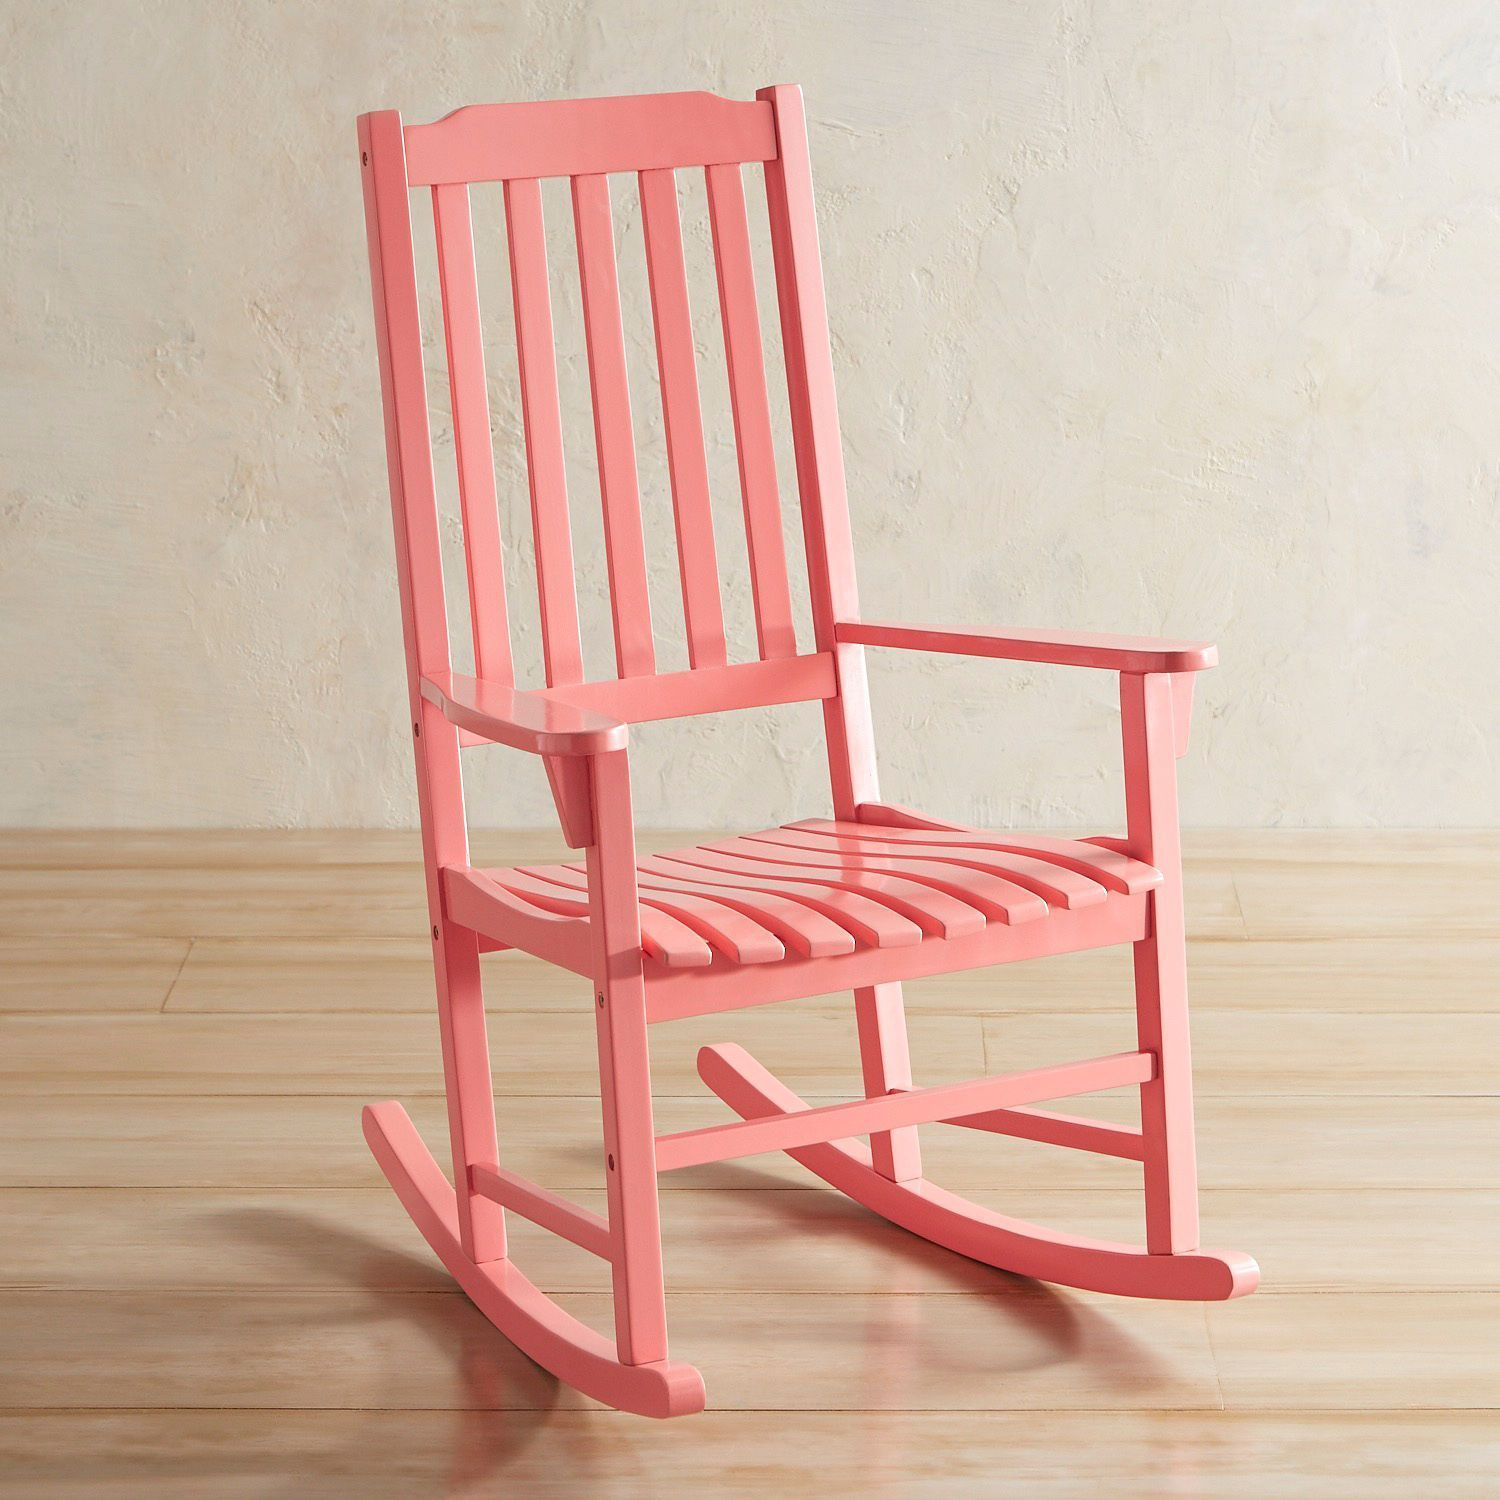 Magnificent Coral Outdoor Rocking Chair Andrewgaddart Wooden Chair Designs For Living Room Andrewgaddartcom